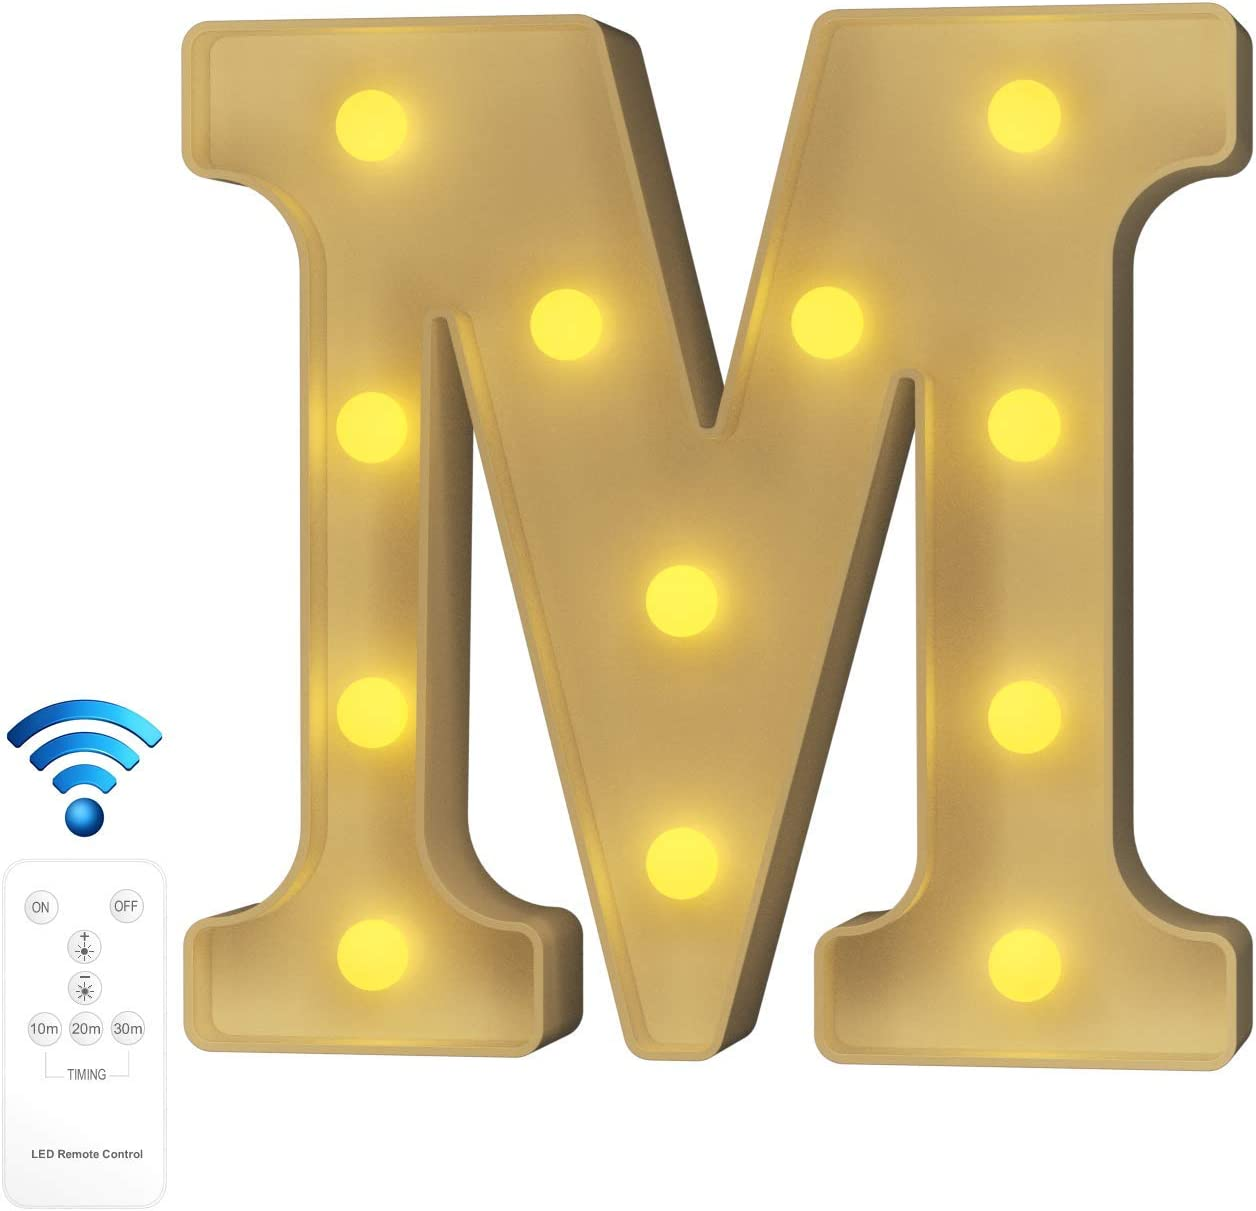 YOUZONE Newly Upgrade LED Letter Lights Marquee Alphabet Light Up Letters with Remote Control Timer Dimmable Battery Powered for Events Wedding Party Birthday Home Bar Decoration (RC-M)